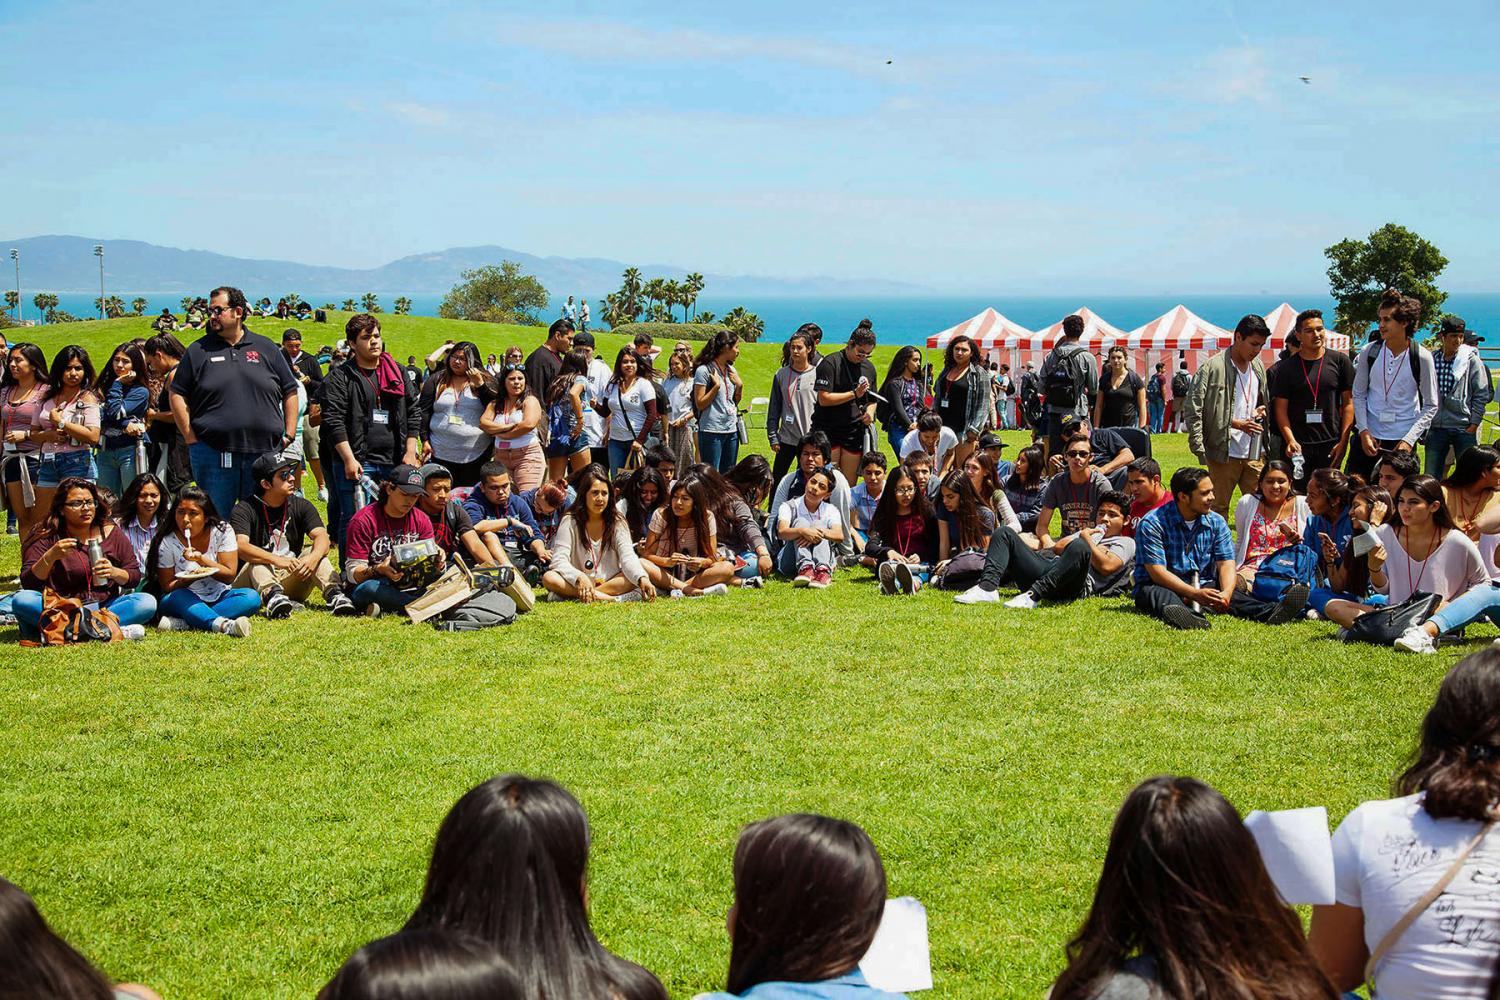 """High school students and City College volunteers sit together listening to students life stories and a music performance at the """"High School Equity and Leadership Conference"""" on Friday, April 28, on West Campus. Students were from the local high schools, Dos Pueblos, San Marcos, Carpinteria, and Santa Barbara high school."""